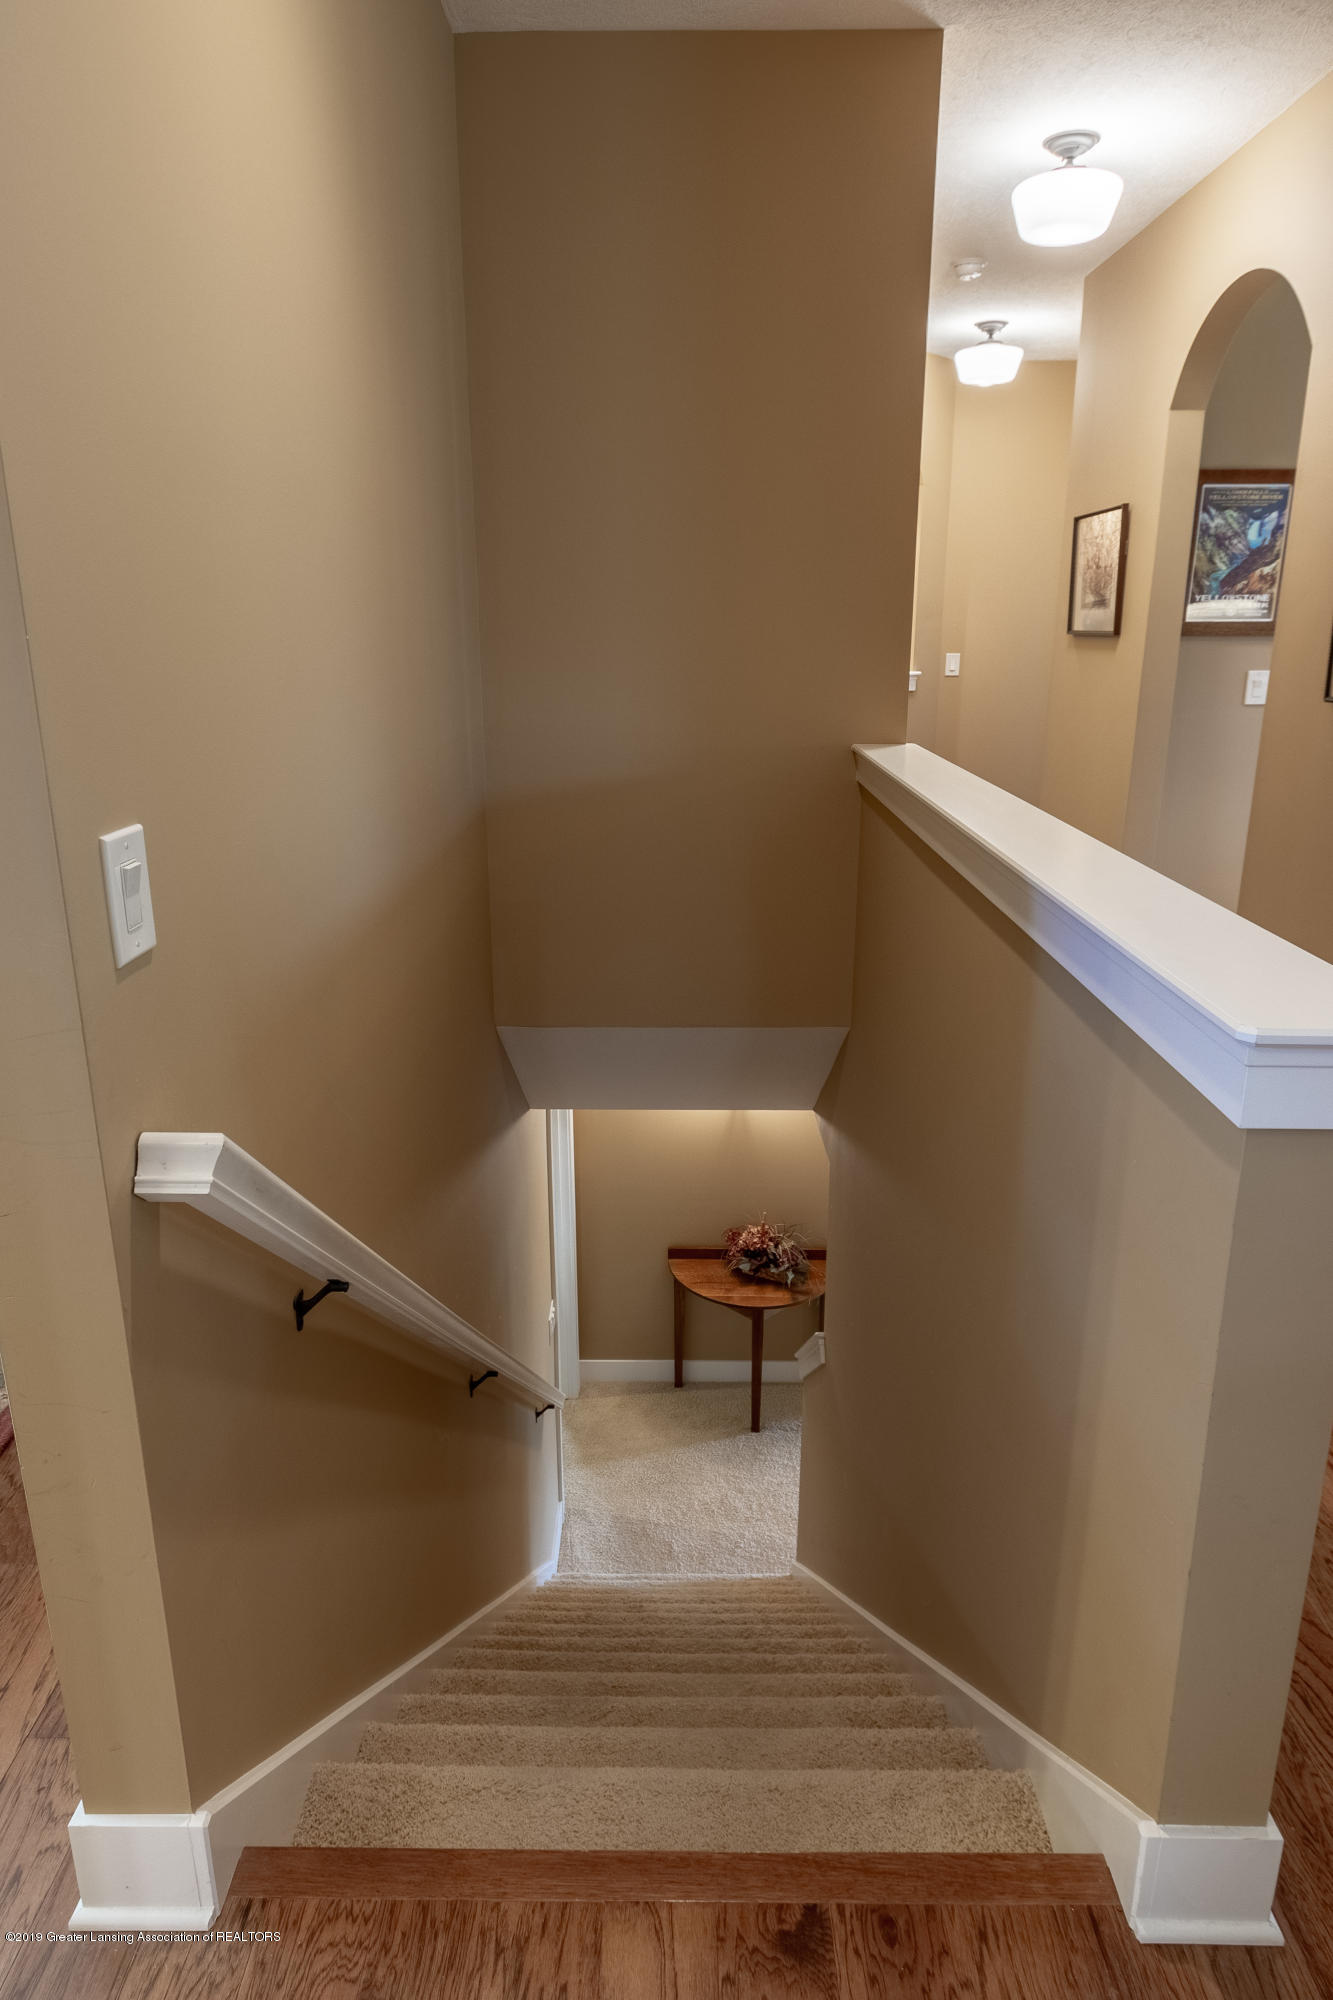 4134 E Benca Way - Stairs to Lower Level - 46